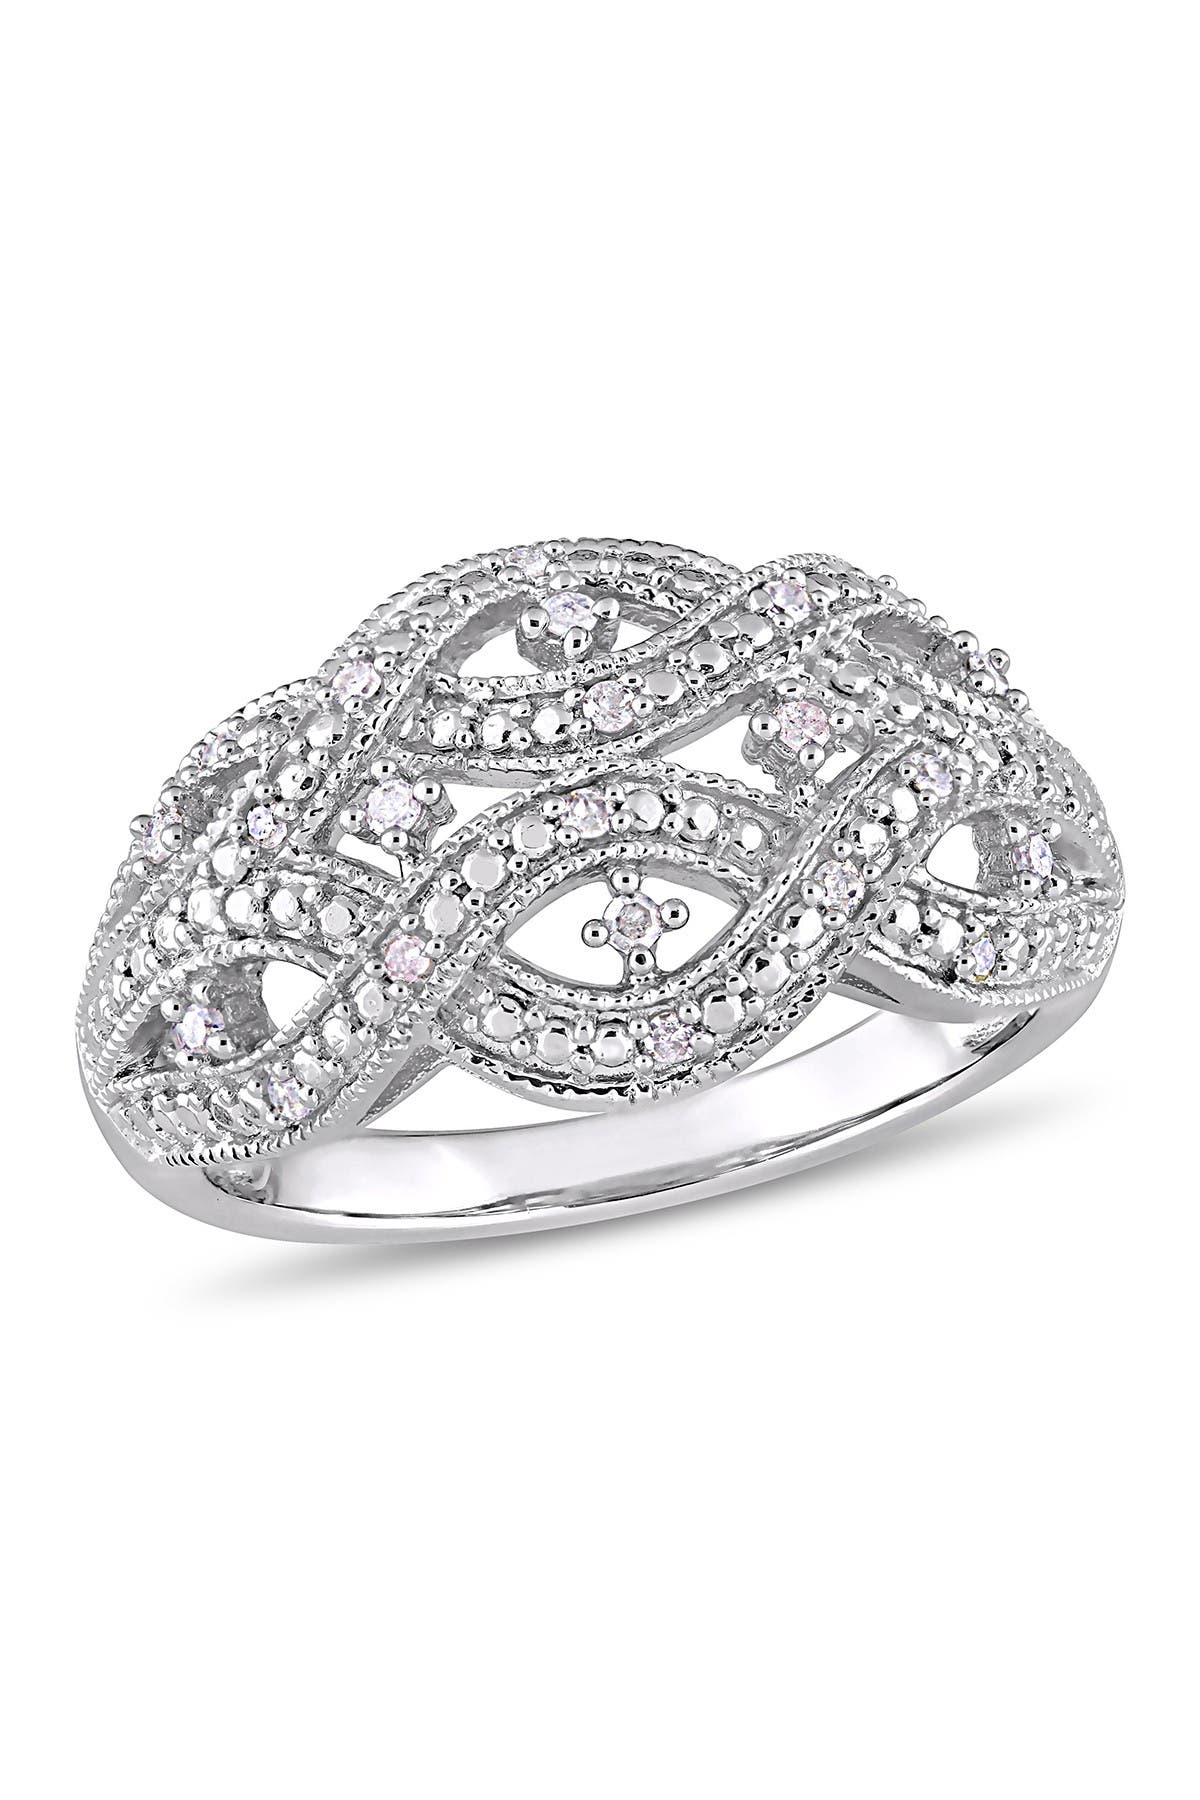 Image of Delmar Sterling Silver Pave Diamond Infinity Ring - 1/8 ctw